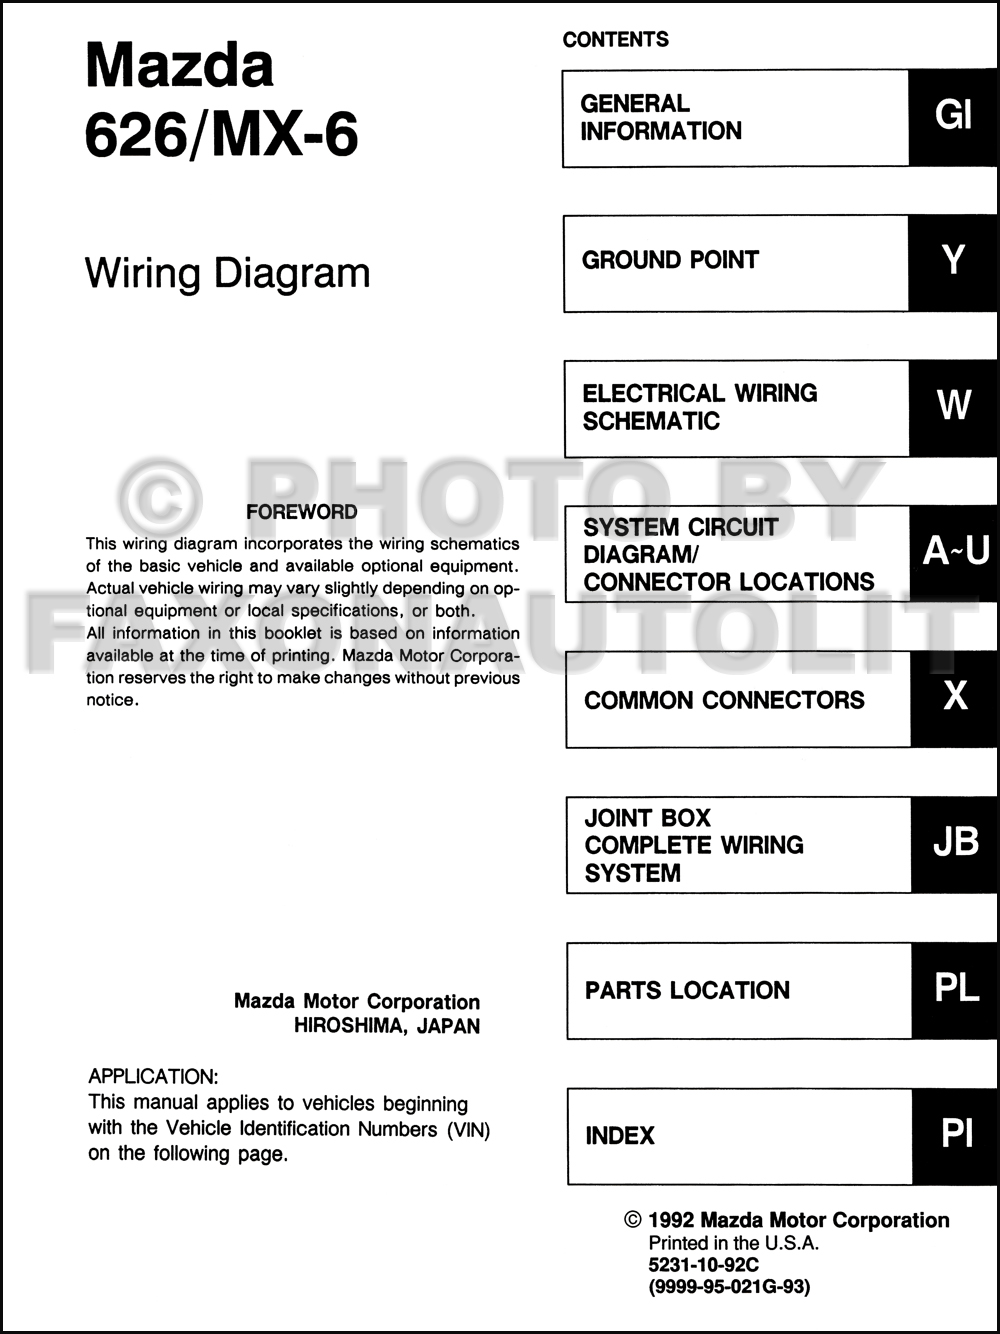 1993Mazda626MX6OWD TOC 1993 mazda 626 and mx 6 wiring diagram manual original 1999 mazda 626 radio wiring diagram at fashall.co